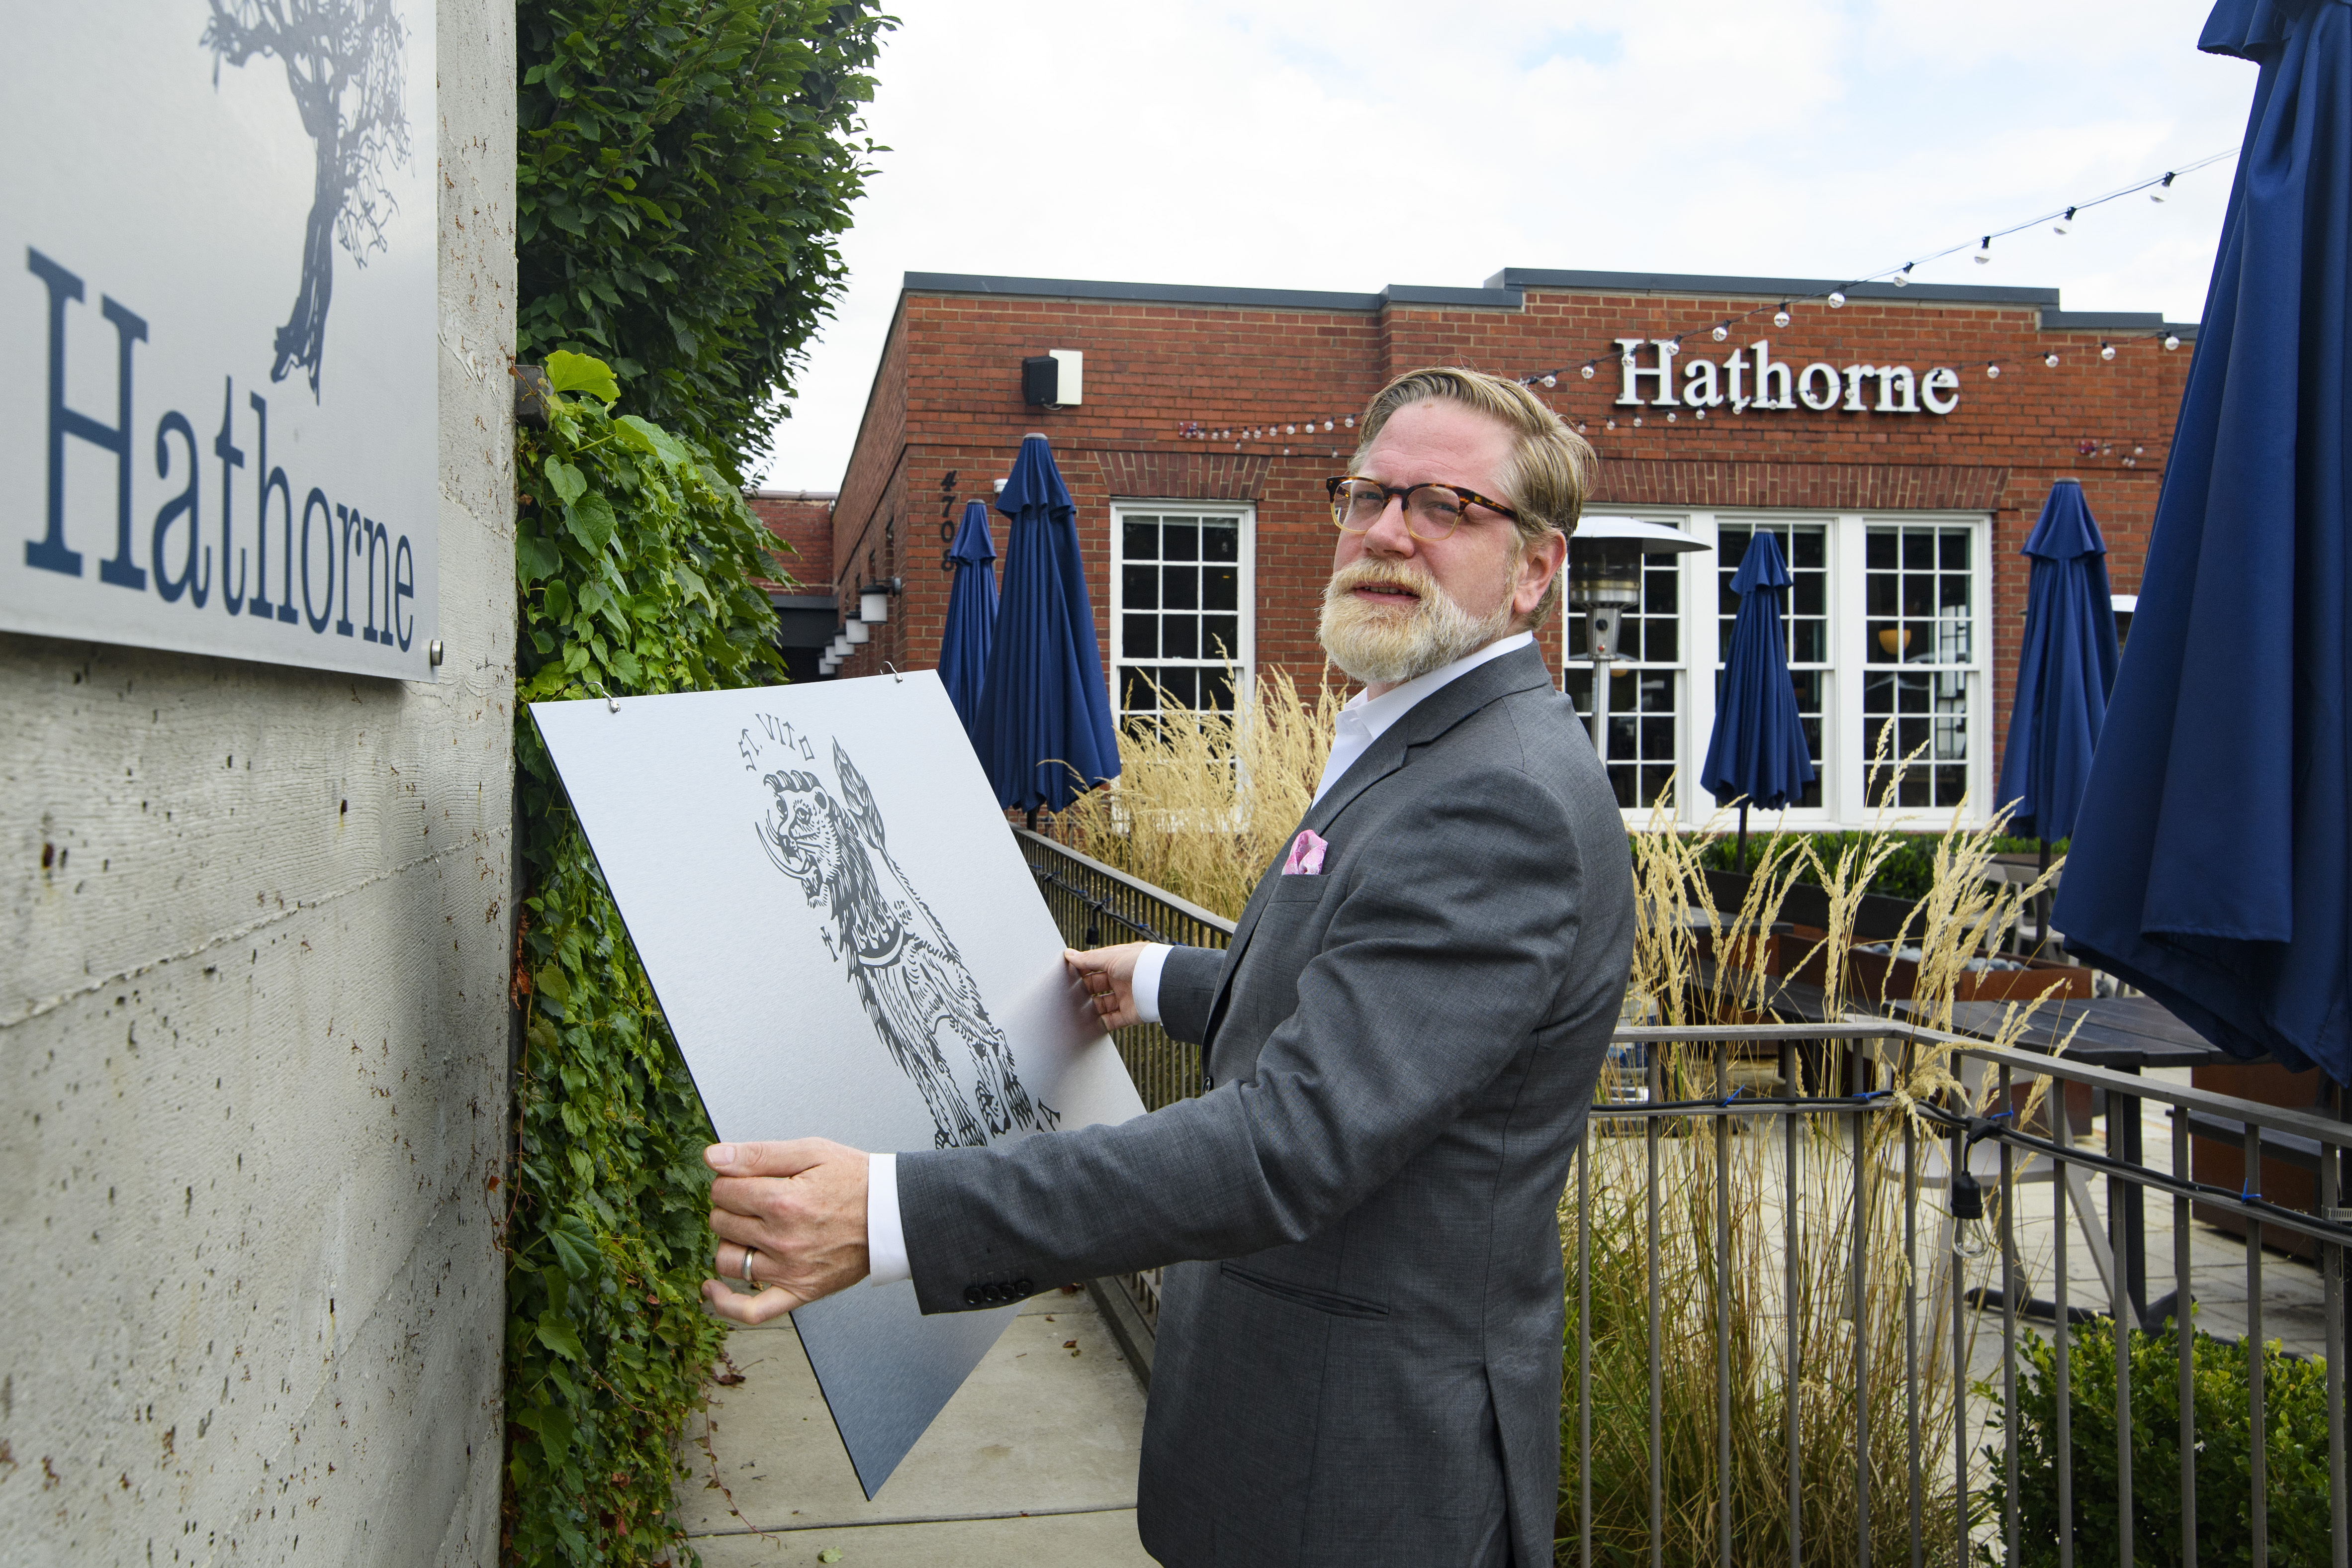 Hathorne restaurant owner John Stephenson holds a sign for a pop-up restaurant in Nashville, Tennessee. Stephenson hosts temporary restaurants, known as pop-ups which he lets use his space, in an effort to help them weather the pandemic.